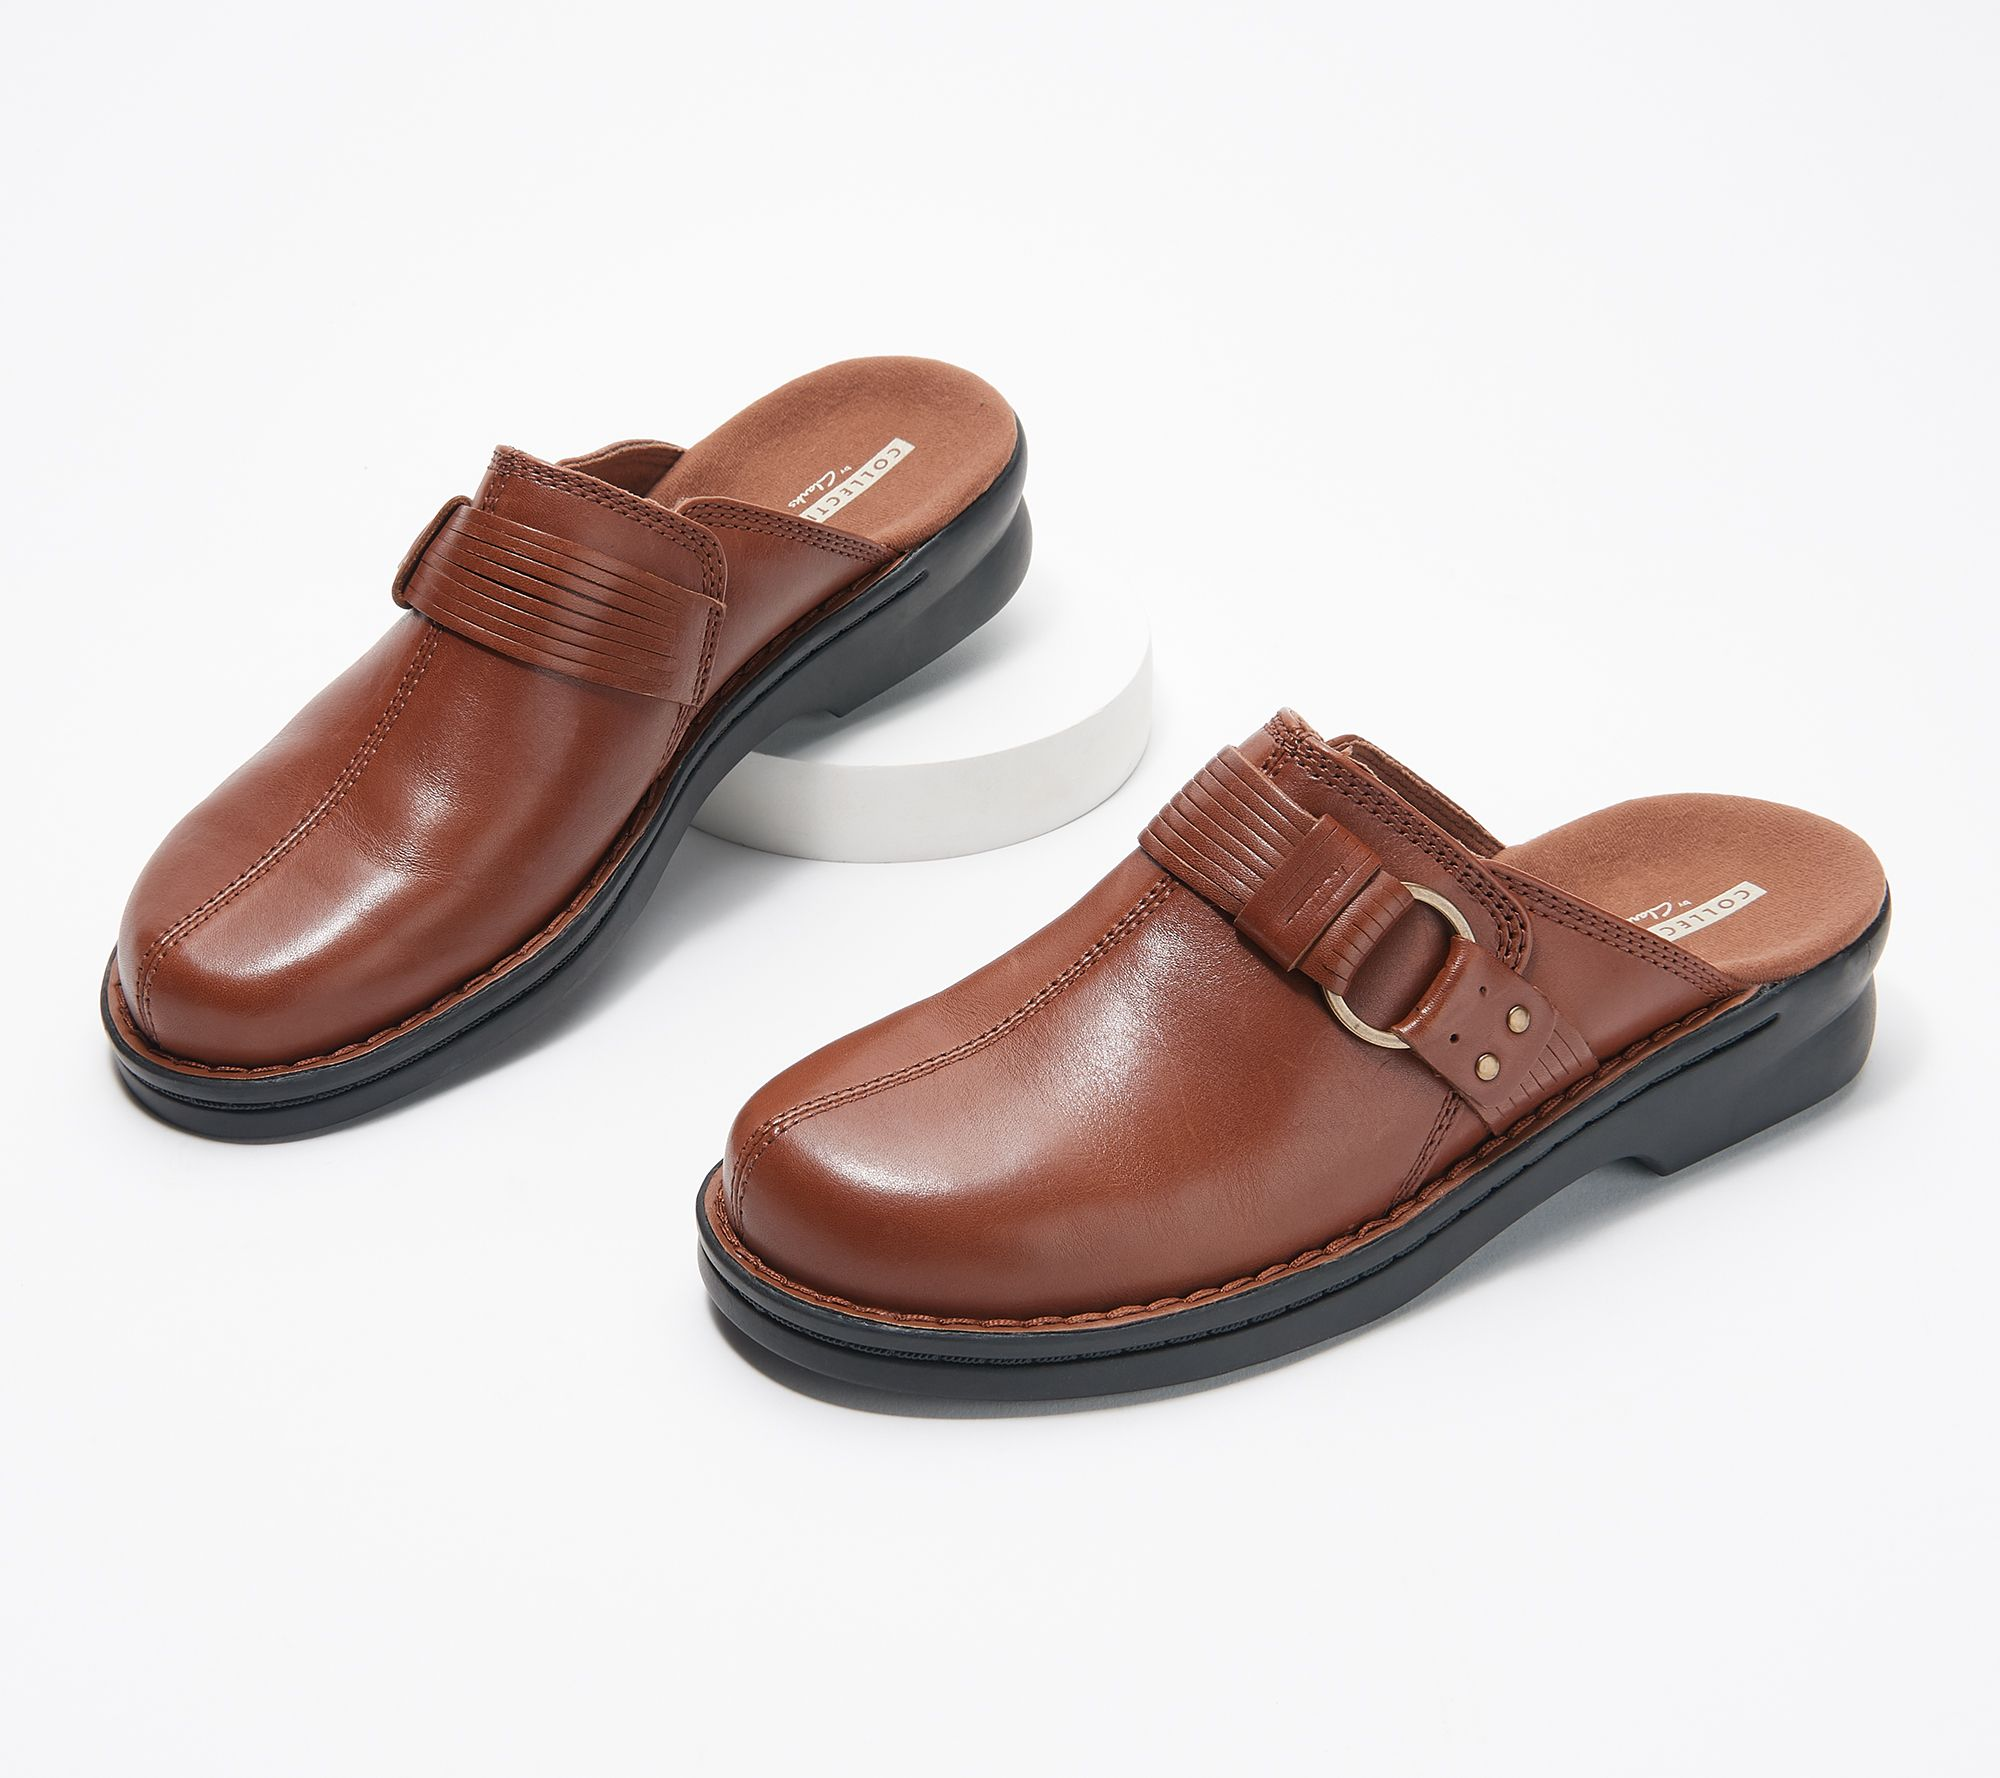 3fe9a8a1e138c1 Clarks Leather Slip-On Clogs - Patty Lorene - Page 1 — QVC.com